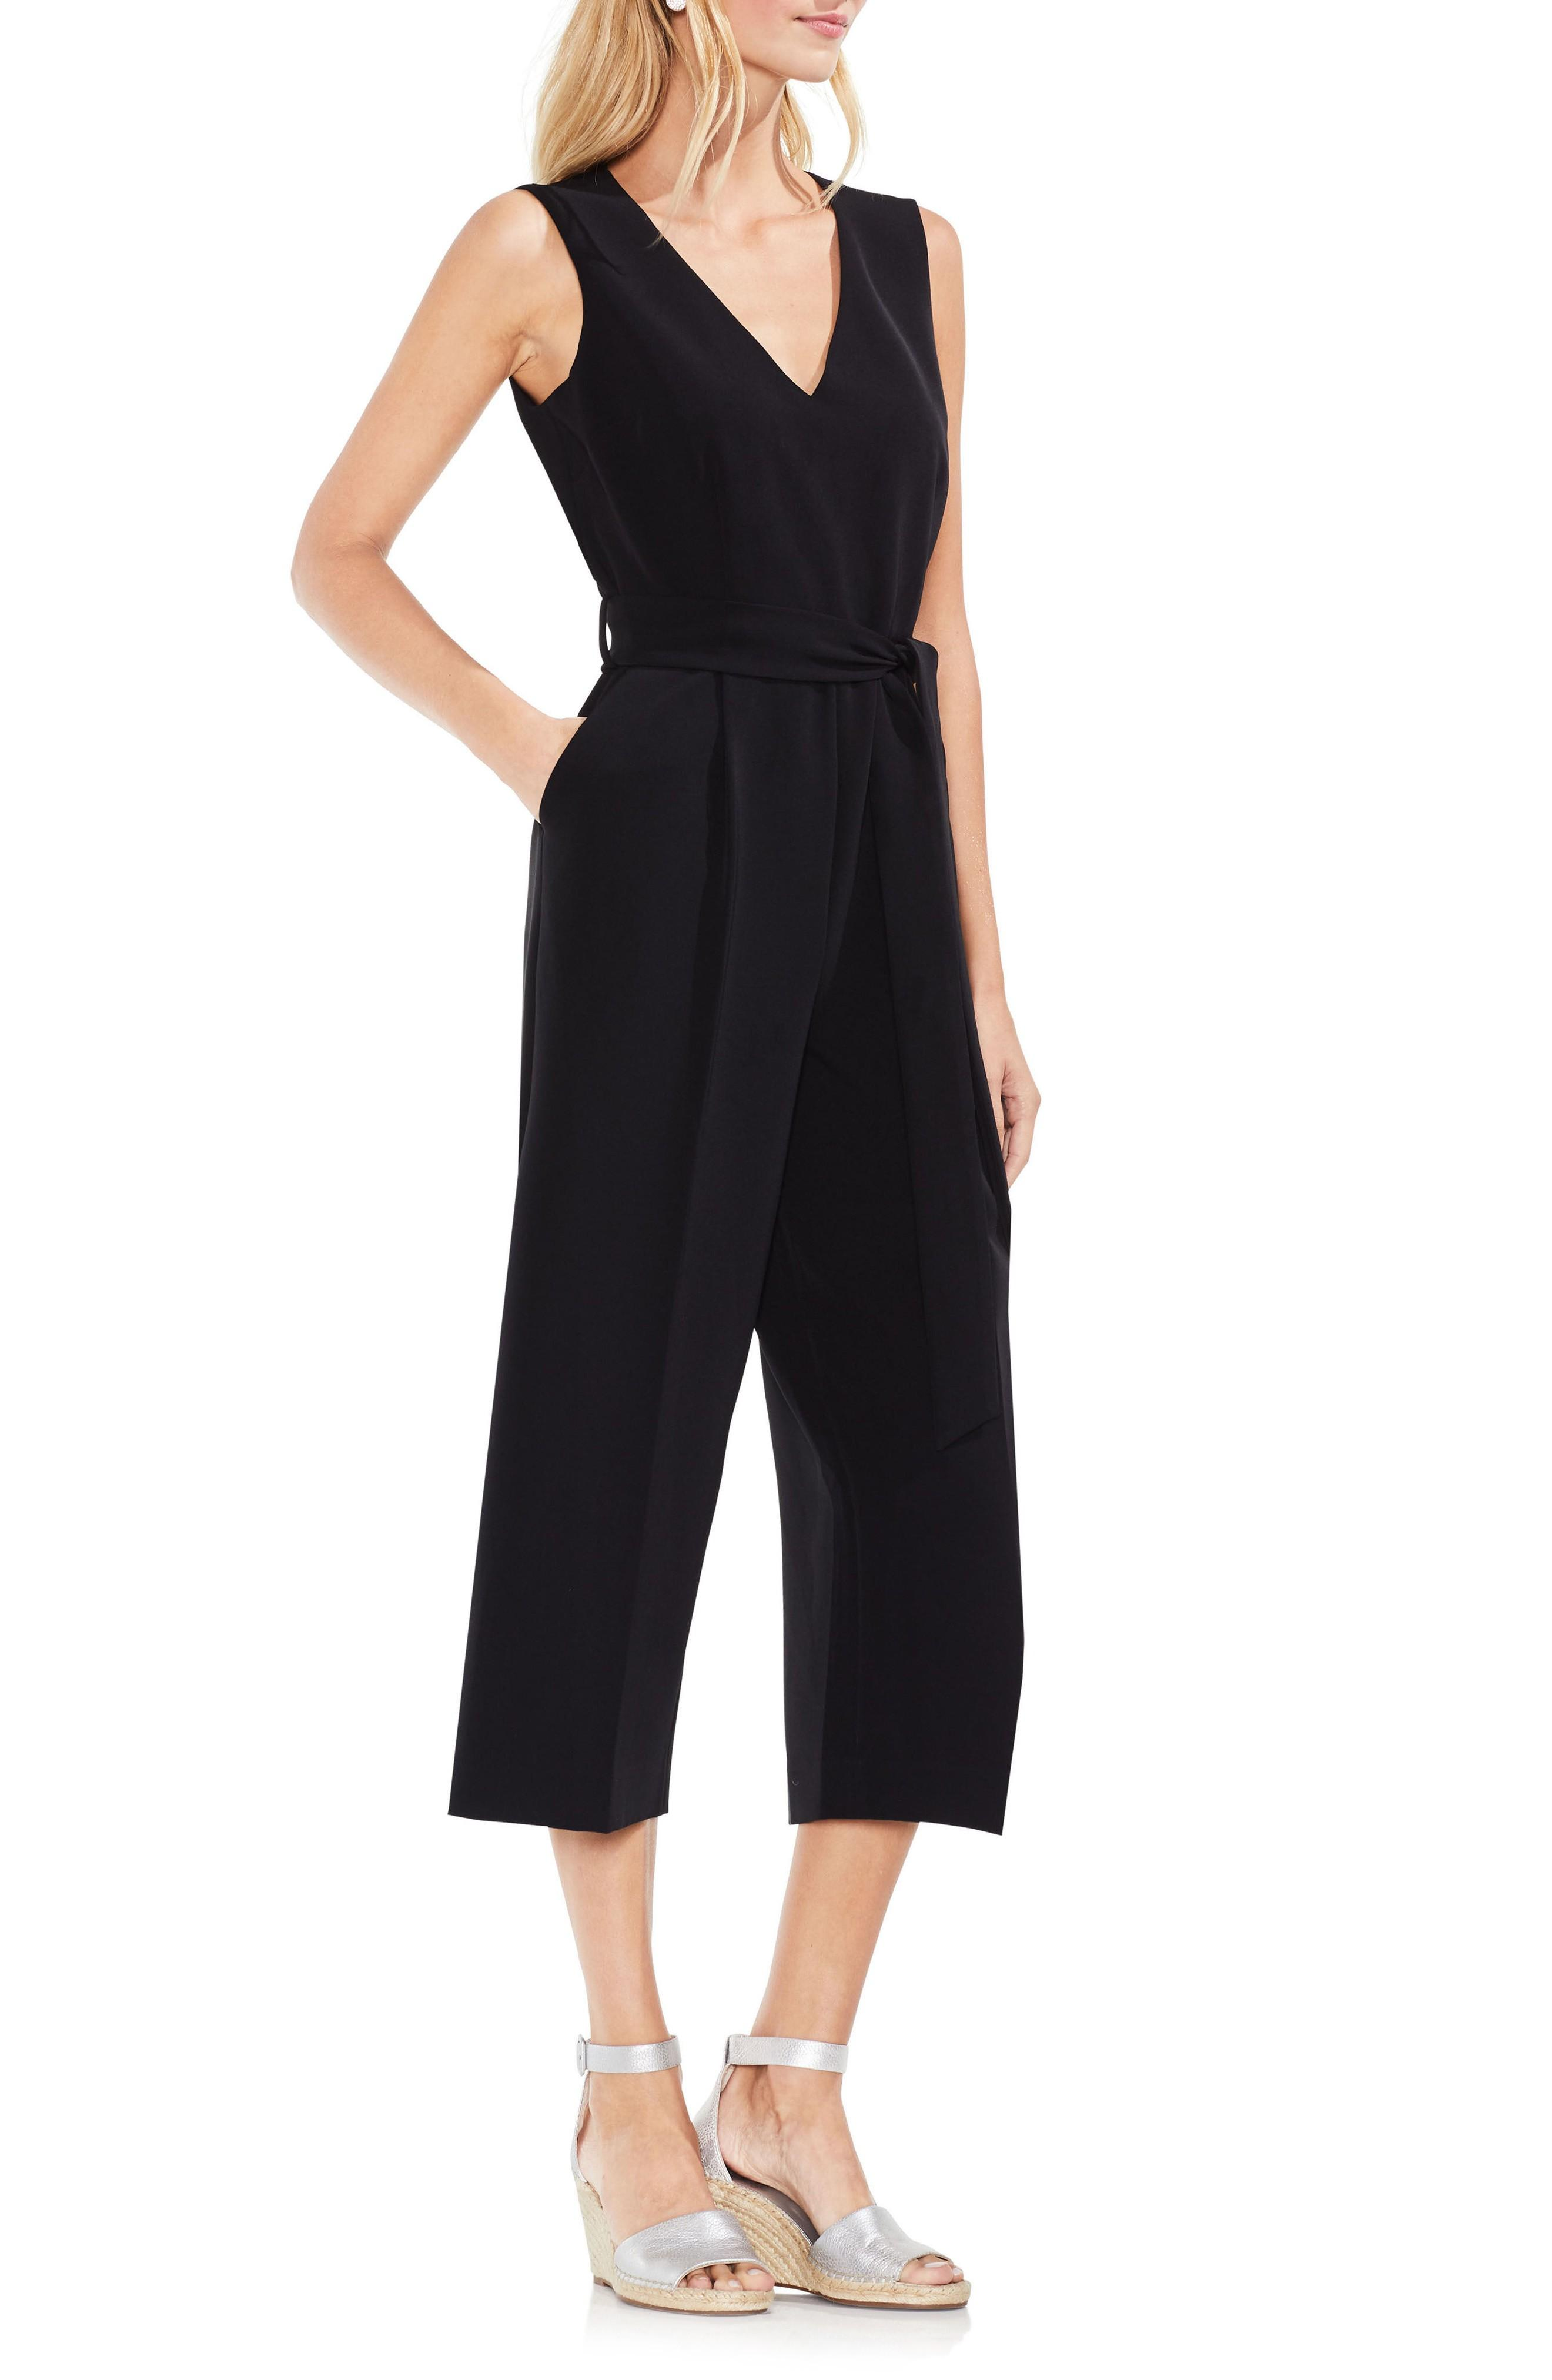 100584e257a2 Boast a sleek silhouette in this easy-to-wear jumpsuit styled with a  flattering V-neck